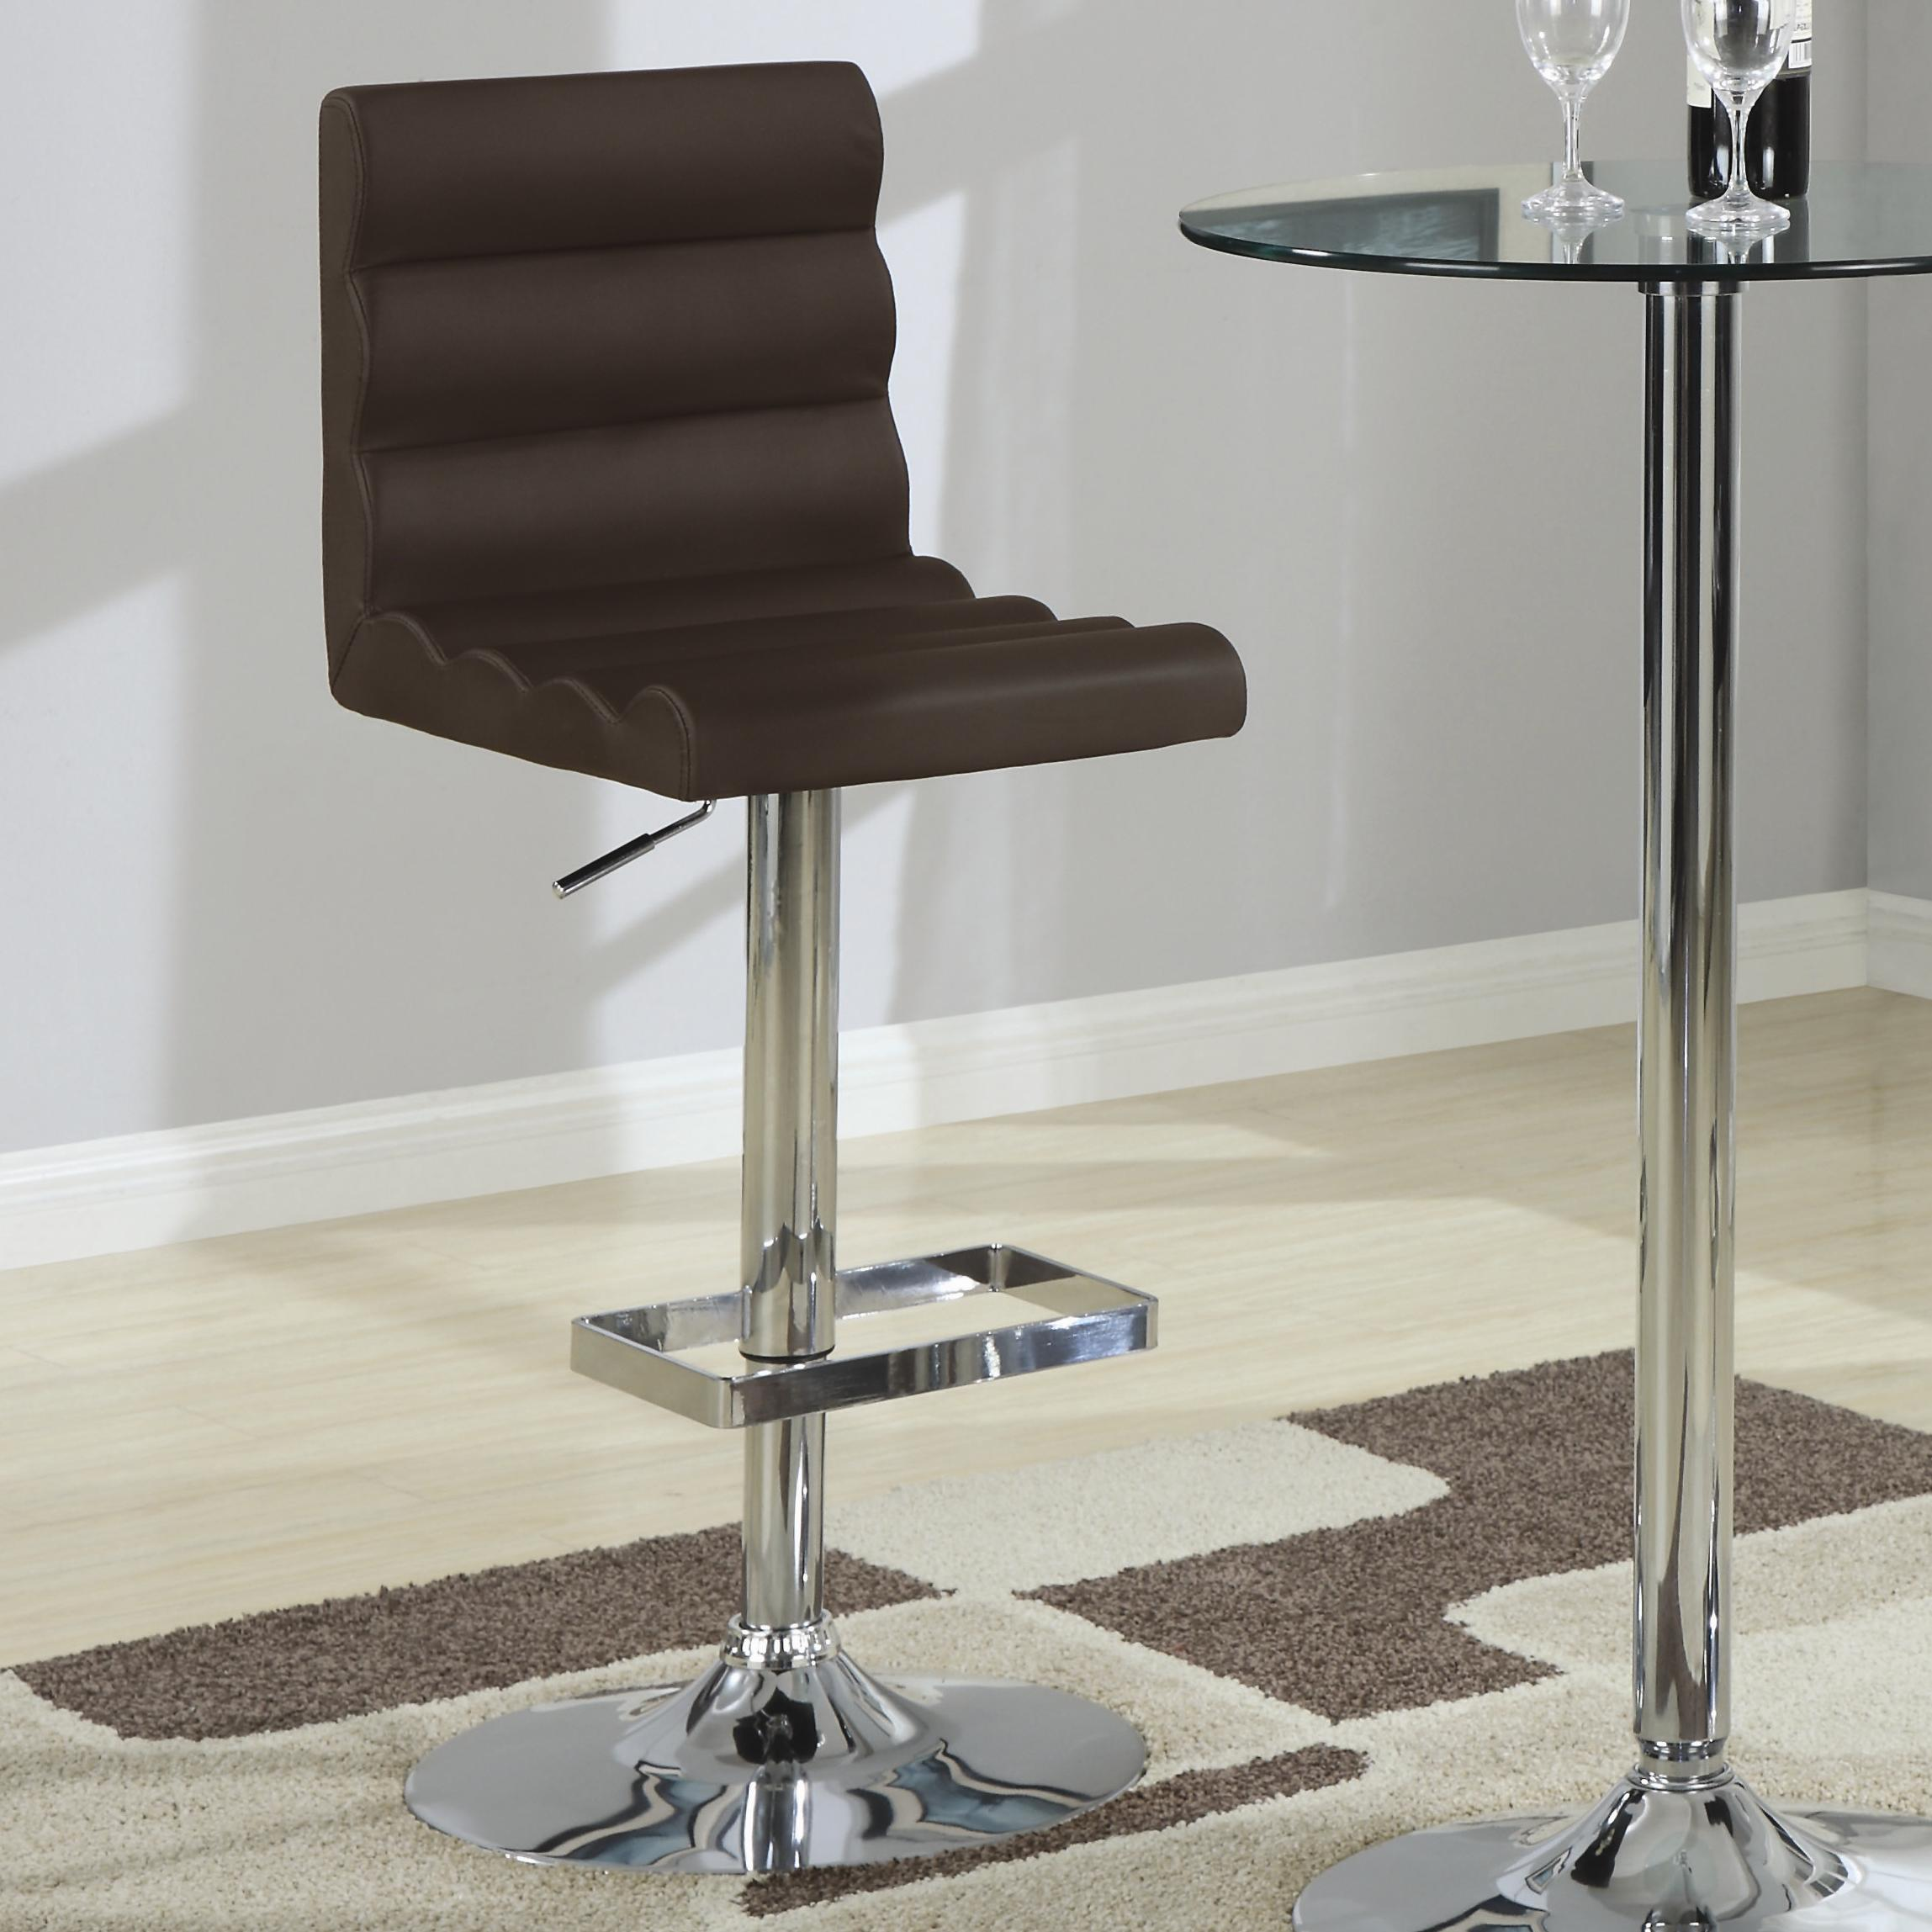 Coaster Bar Units and Bar Tables Stool (Brown) - Item Number: 120355